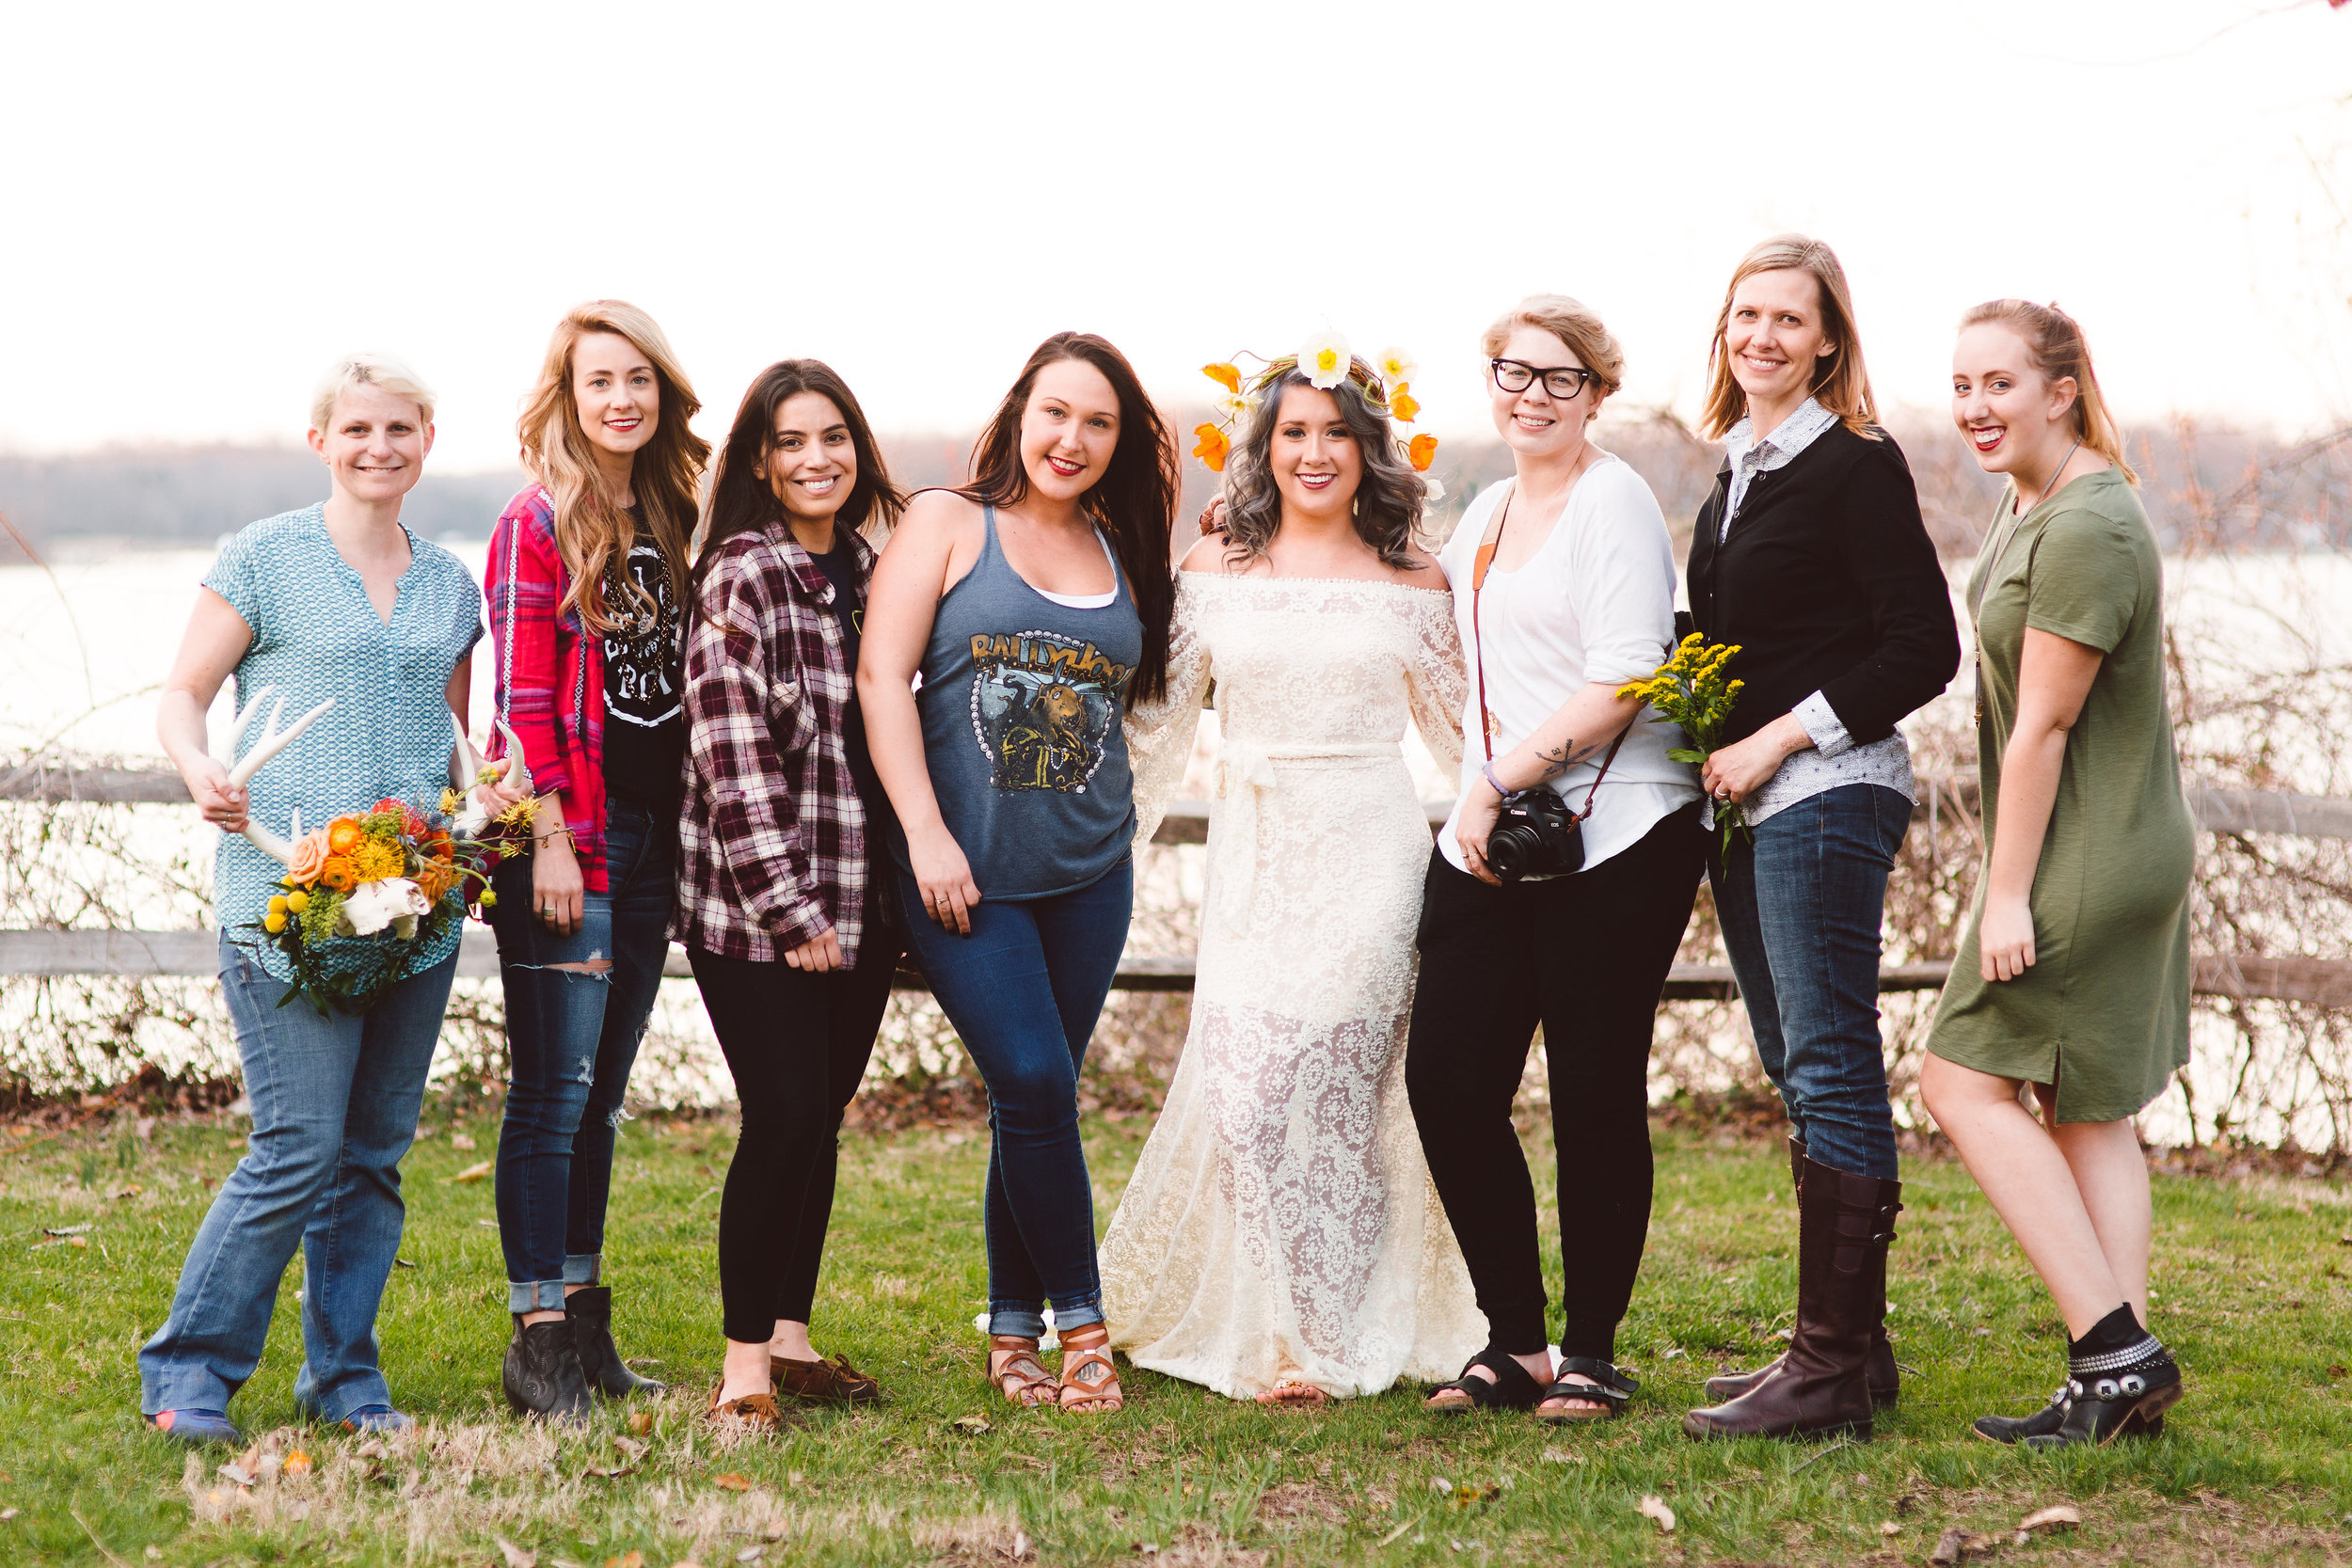 The Styled Shoot Team